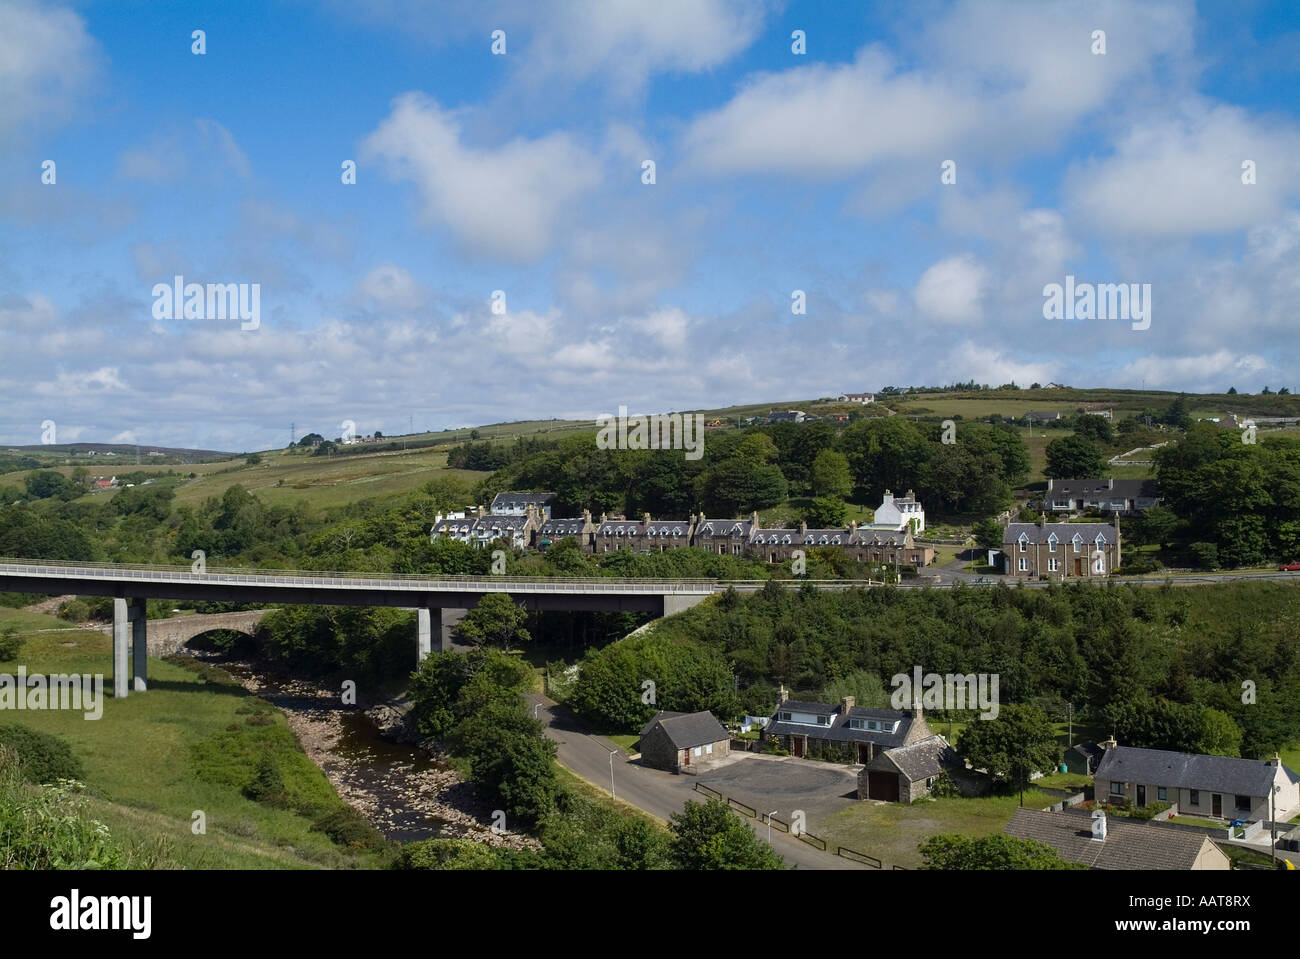 dh  DUNBEATH CAITHNESS Row of houses in village above A9 road bridge spanning Dunbeath Water - Stock Image